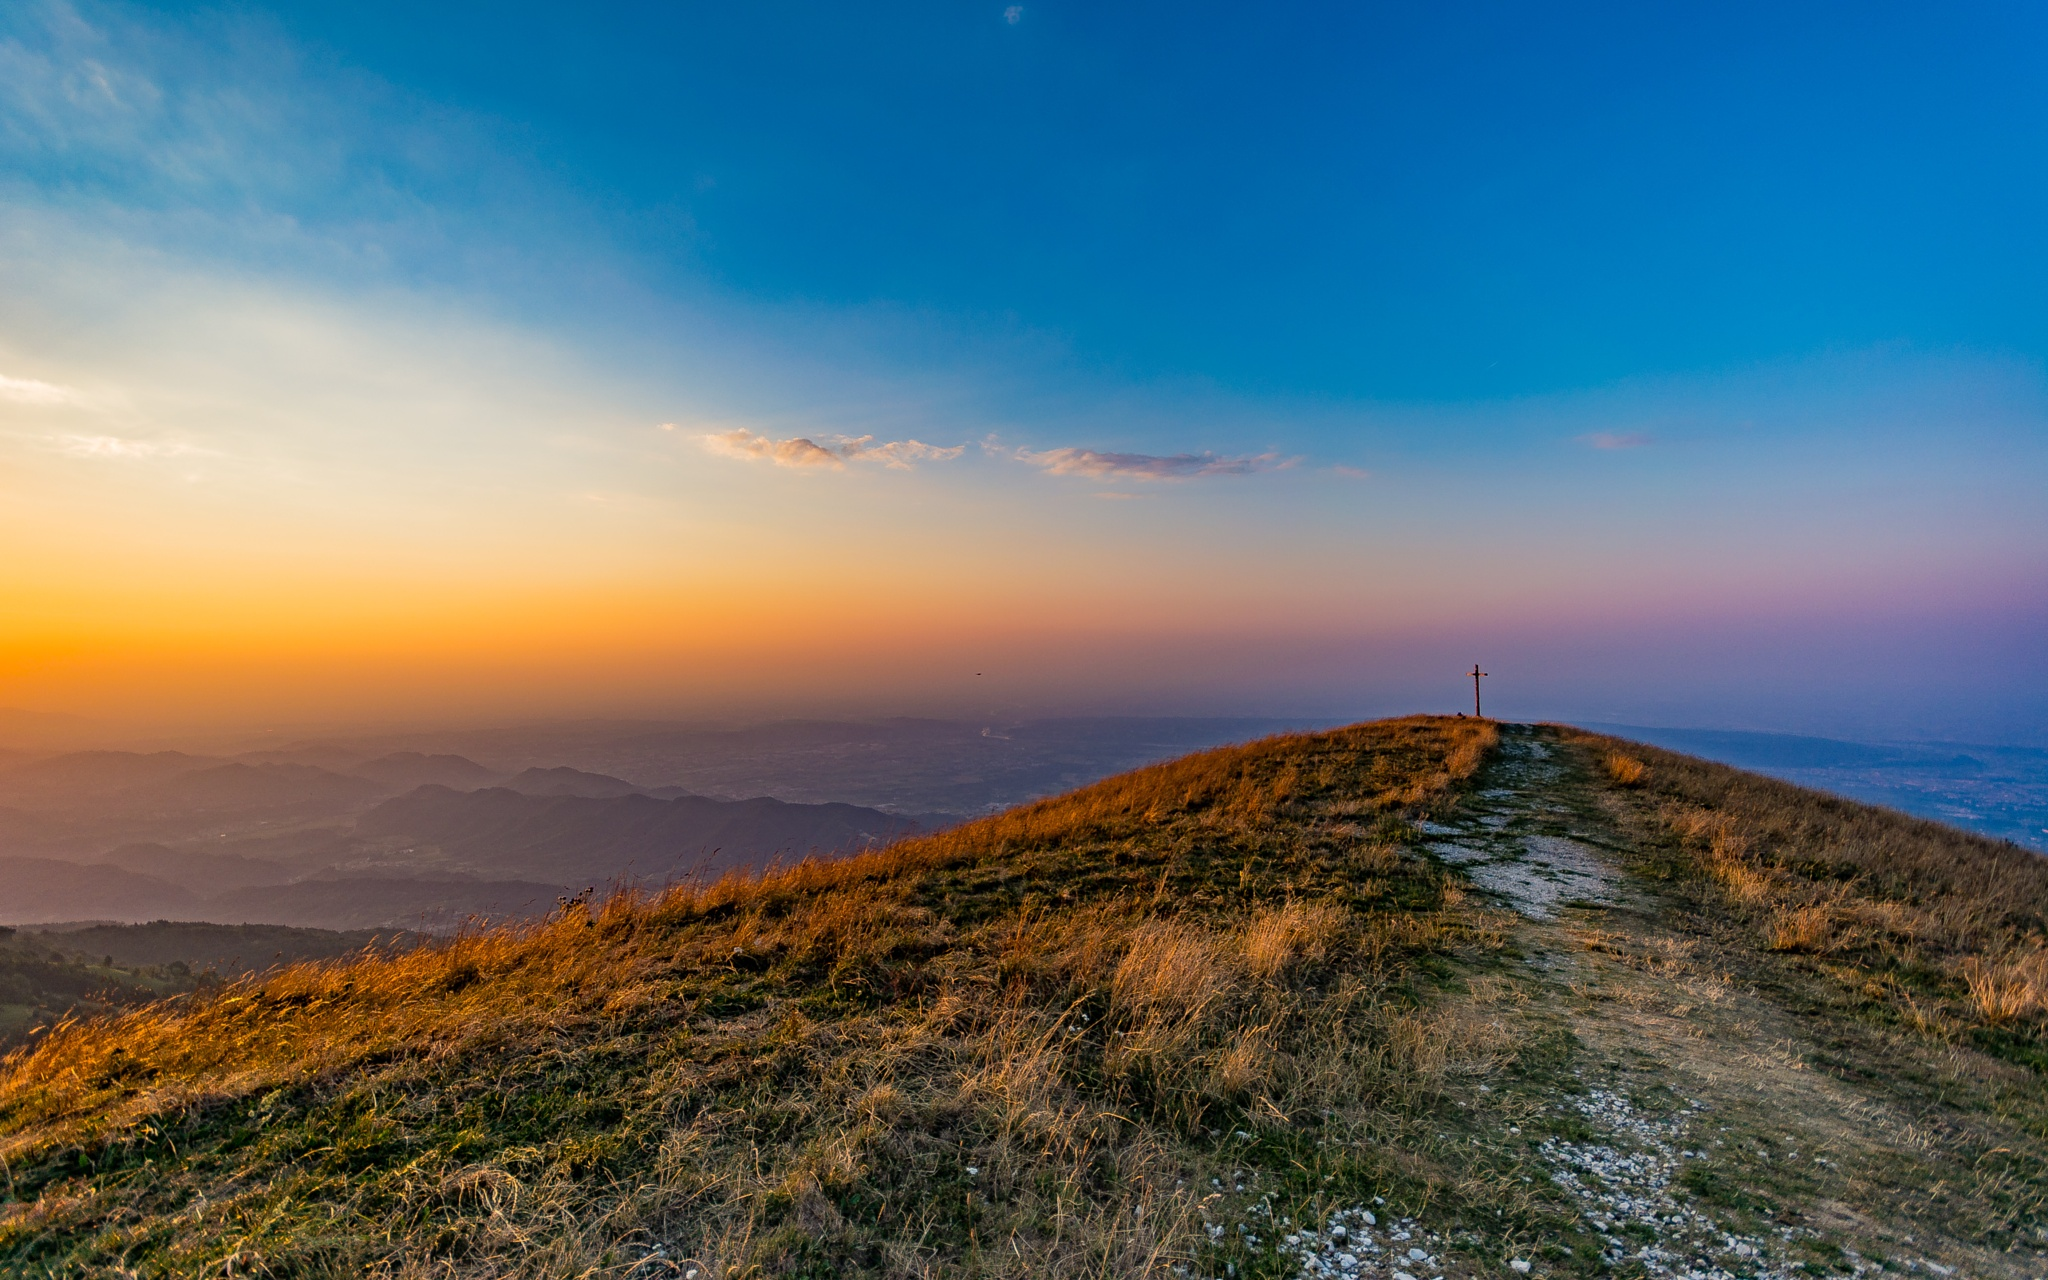 Monte Cesen (Italy) by Gianni Santolin